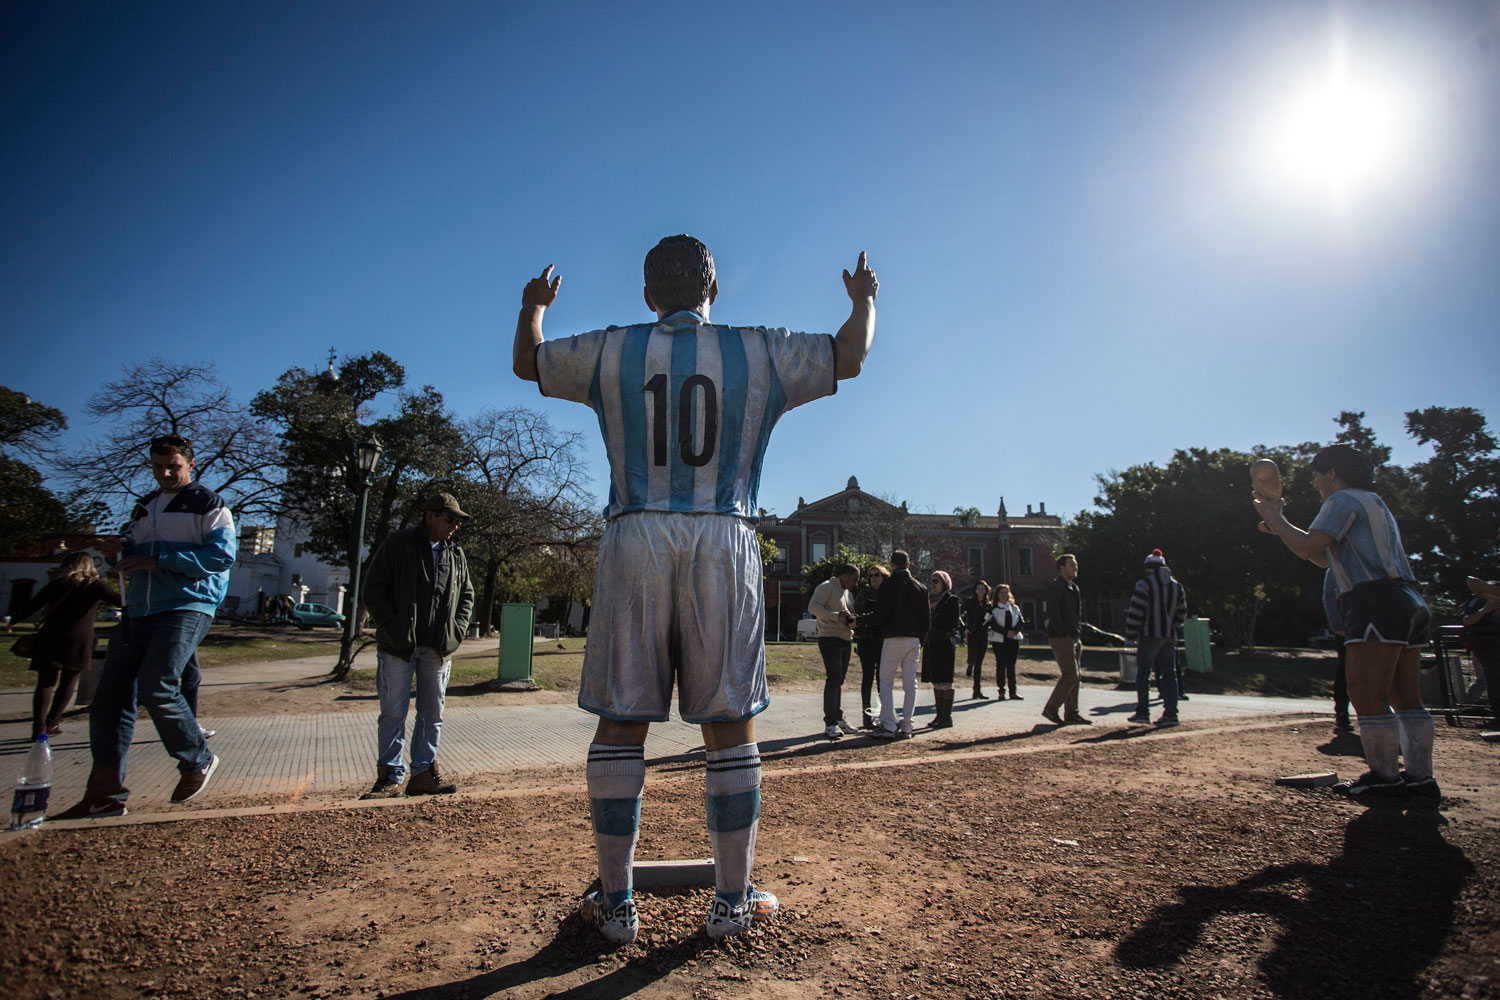 Tourists walk past sculptures of Argentinean players Diego Maradona and player Lionel Messi of Argentina's national soccer team, in the Intendant Alvear Square in Buenos Aires, Argentina on June 19, 2014.